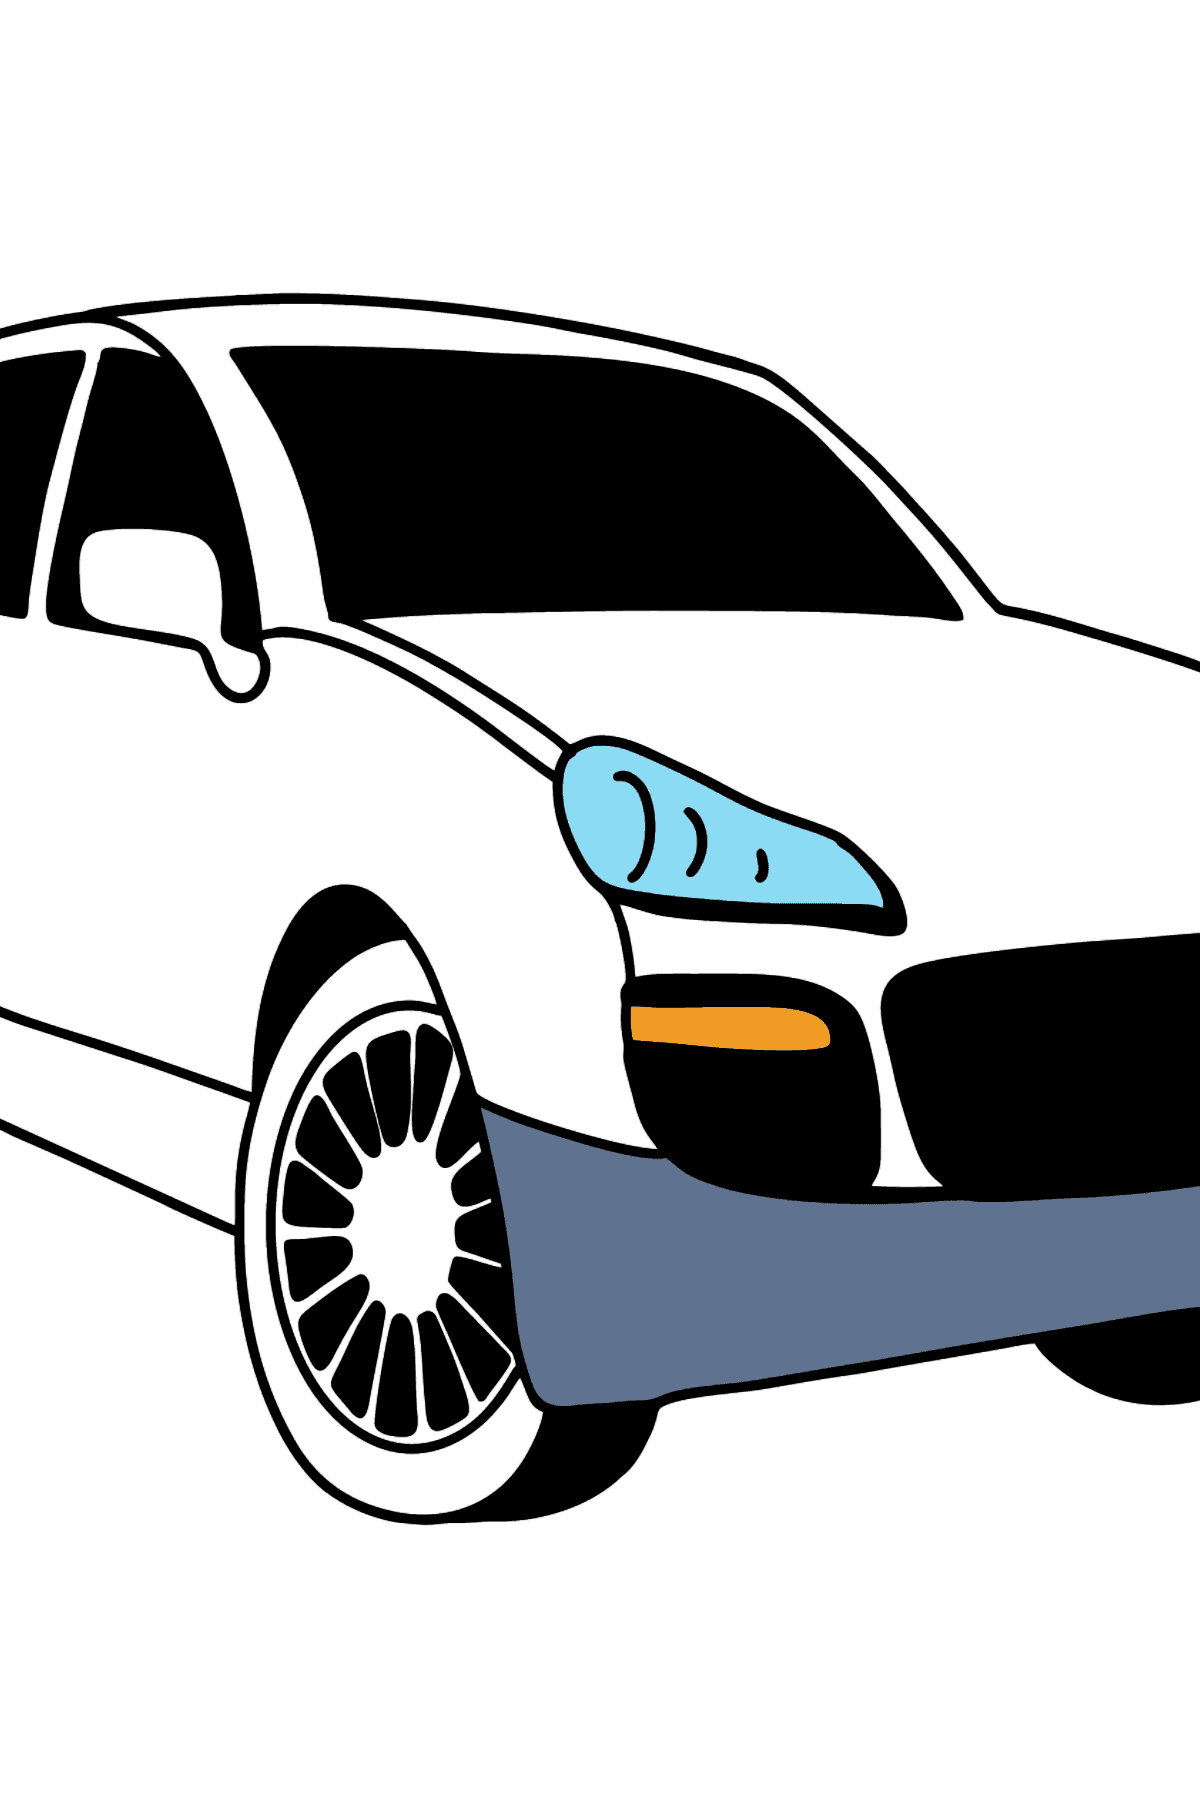 Porsche Cayenne Crossover coloring page - Coloring Pages for Kids